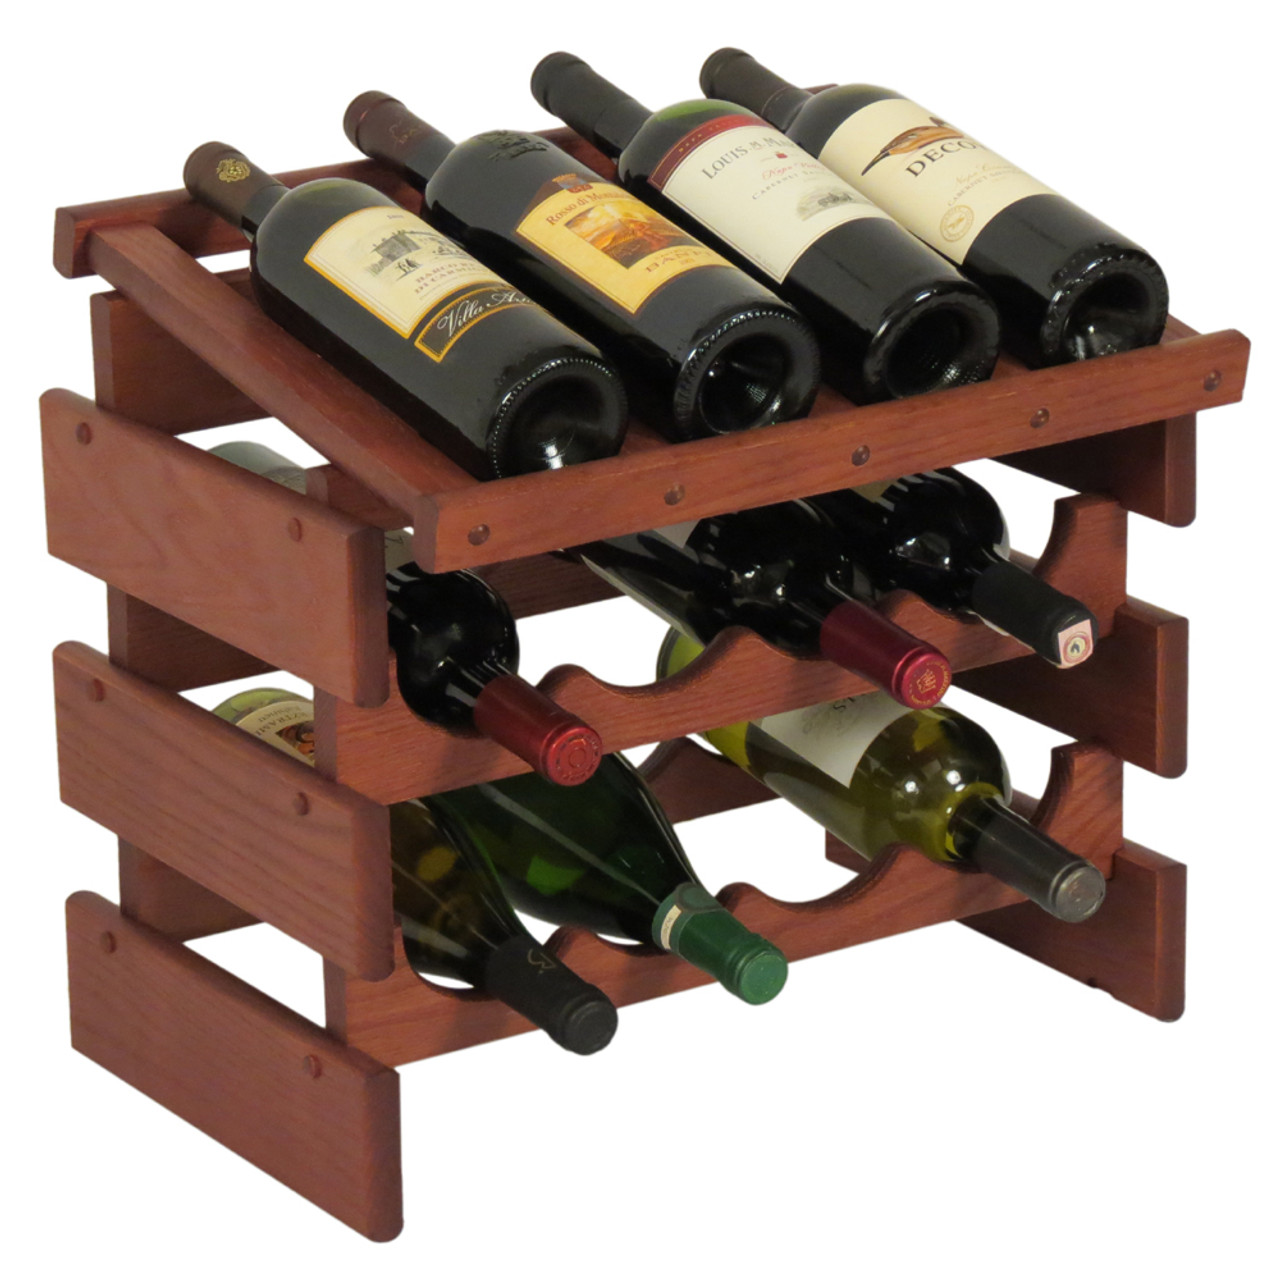 Wooden Mallet Wrd42 Dakota 12 Bottle Wine Rack With Display Top Affordable Coat Rack Wooden Mallet Products